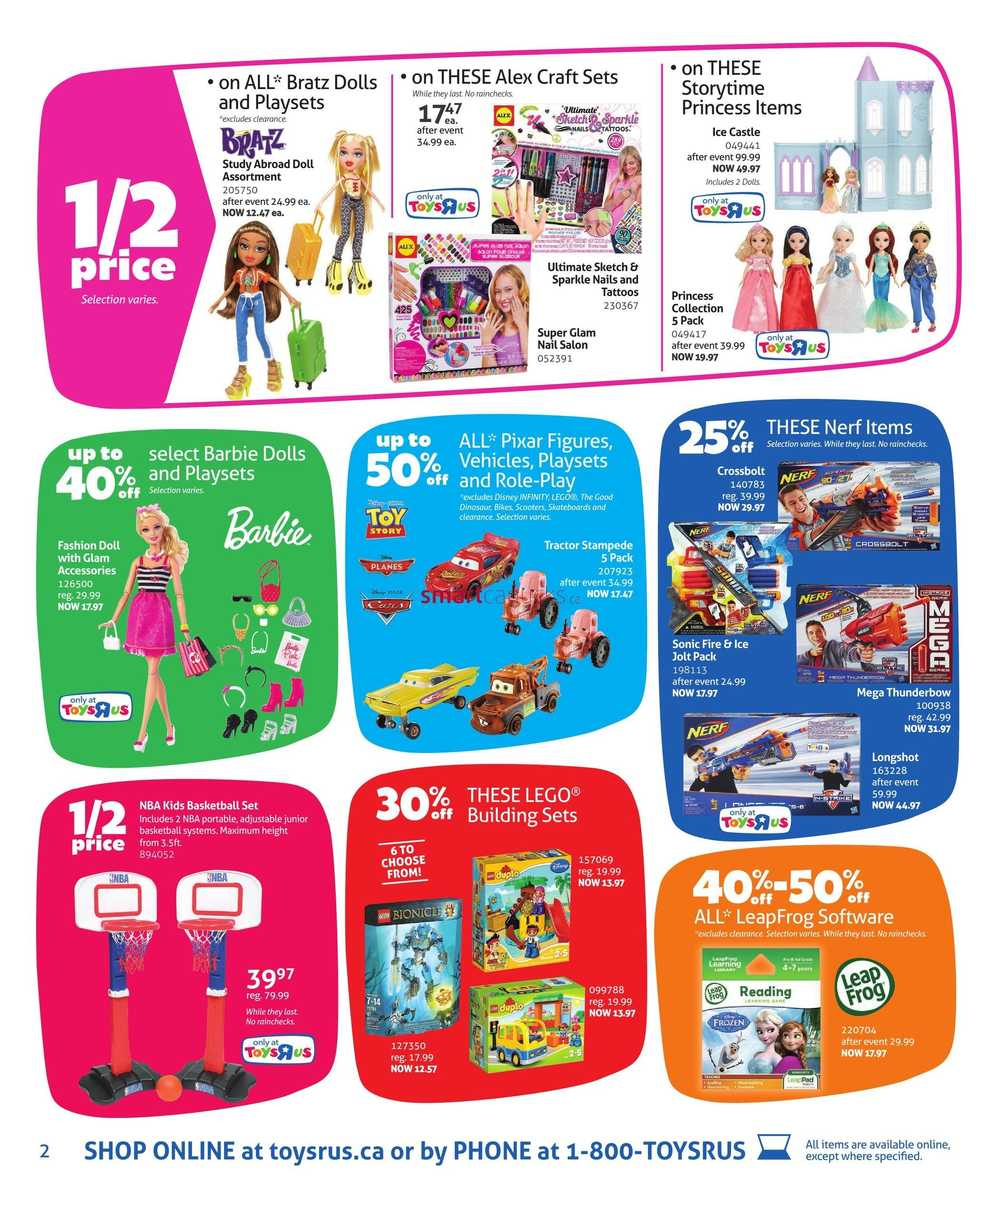 Toys R Us Canada Boxing Day / Boxing Week Flyer Deals 2015